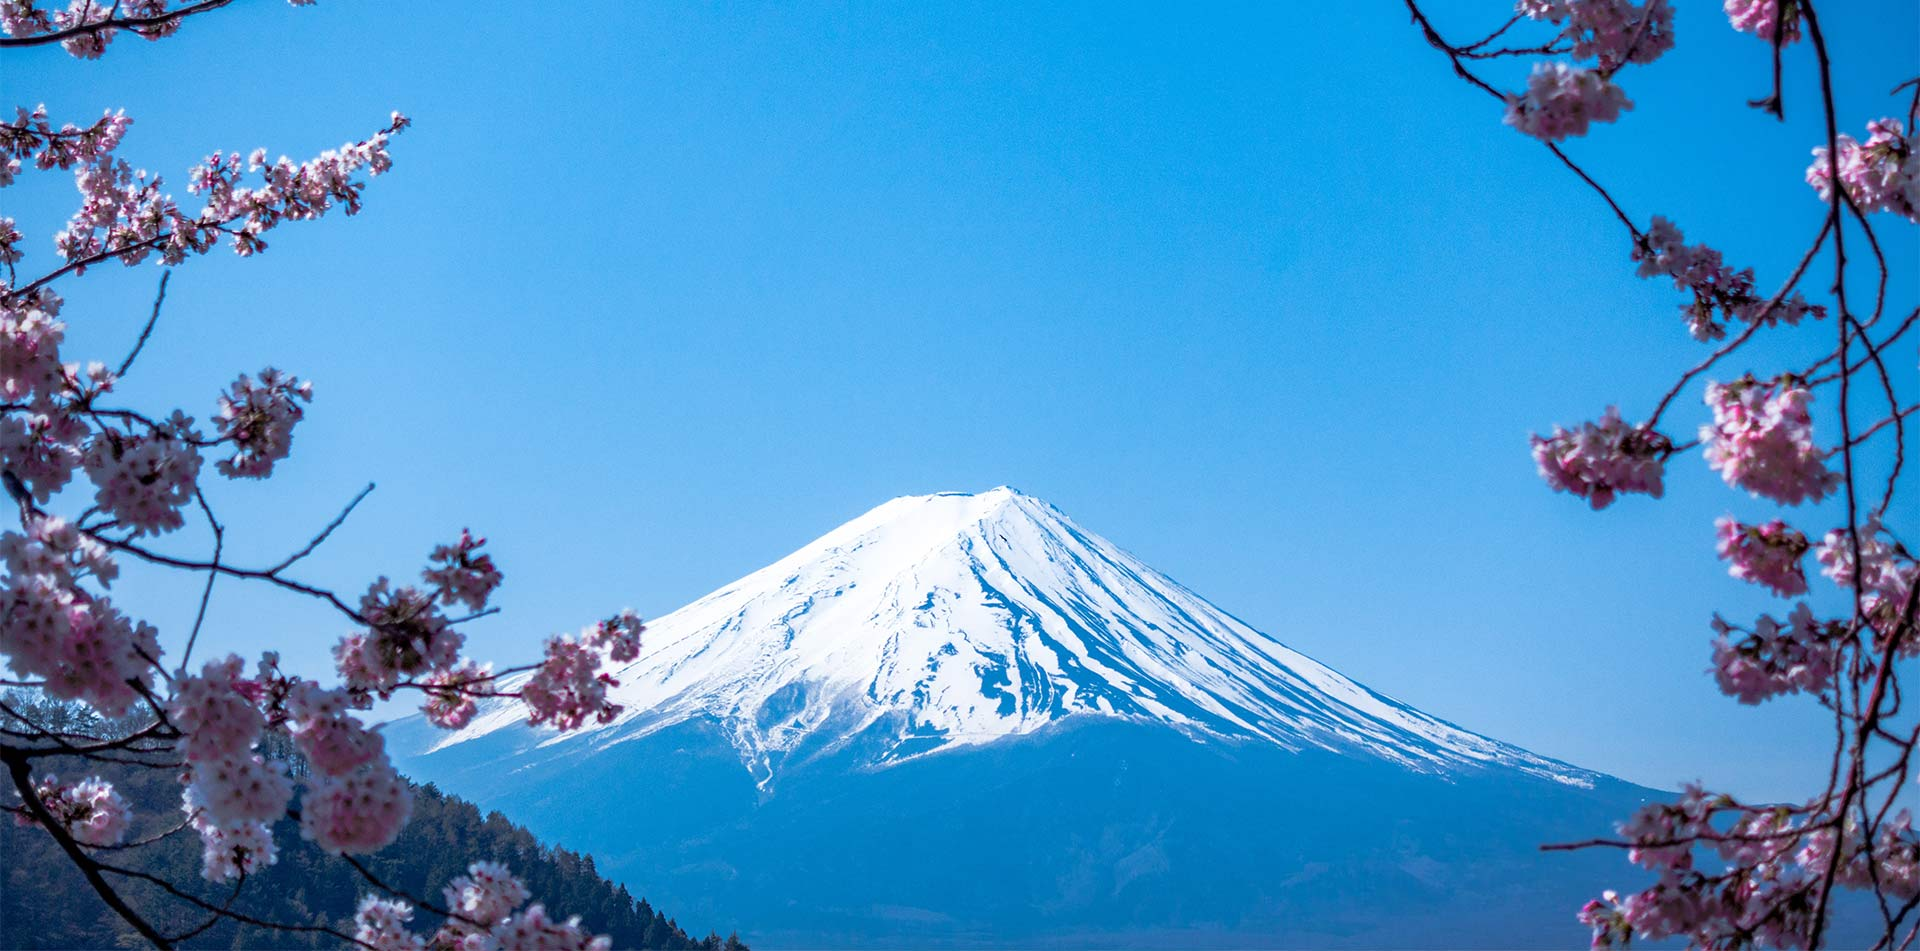 Asia Japan Cherry Blossom flowers and Mount Fuji with snow - luxury vacation destinations